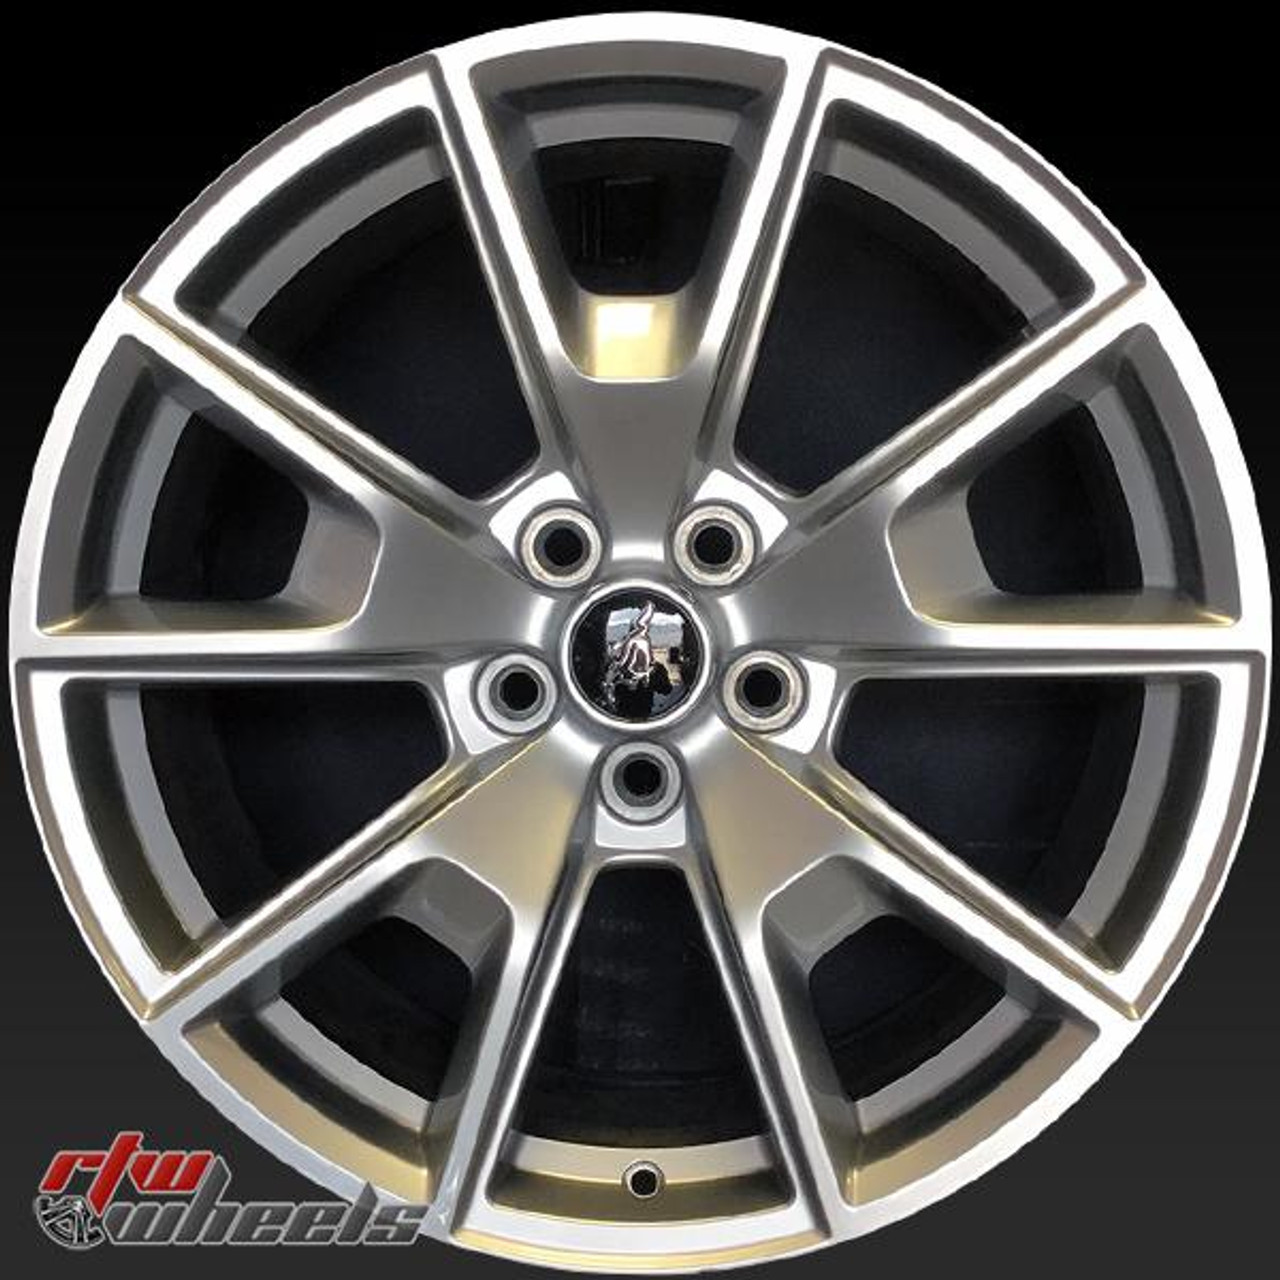 19 Ford Mustang Oem Wheels For Sale 2015 Silver Rims 10033